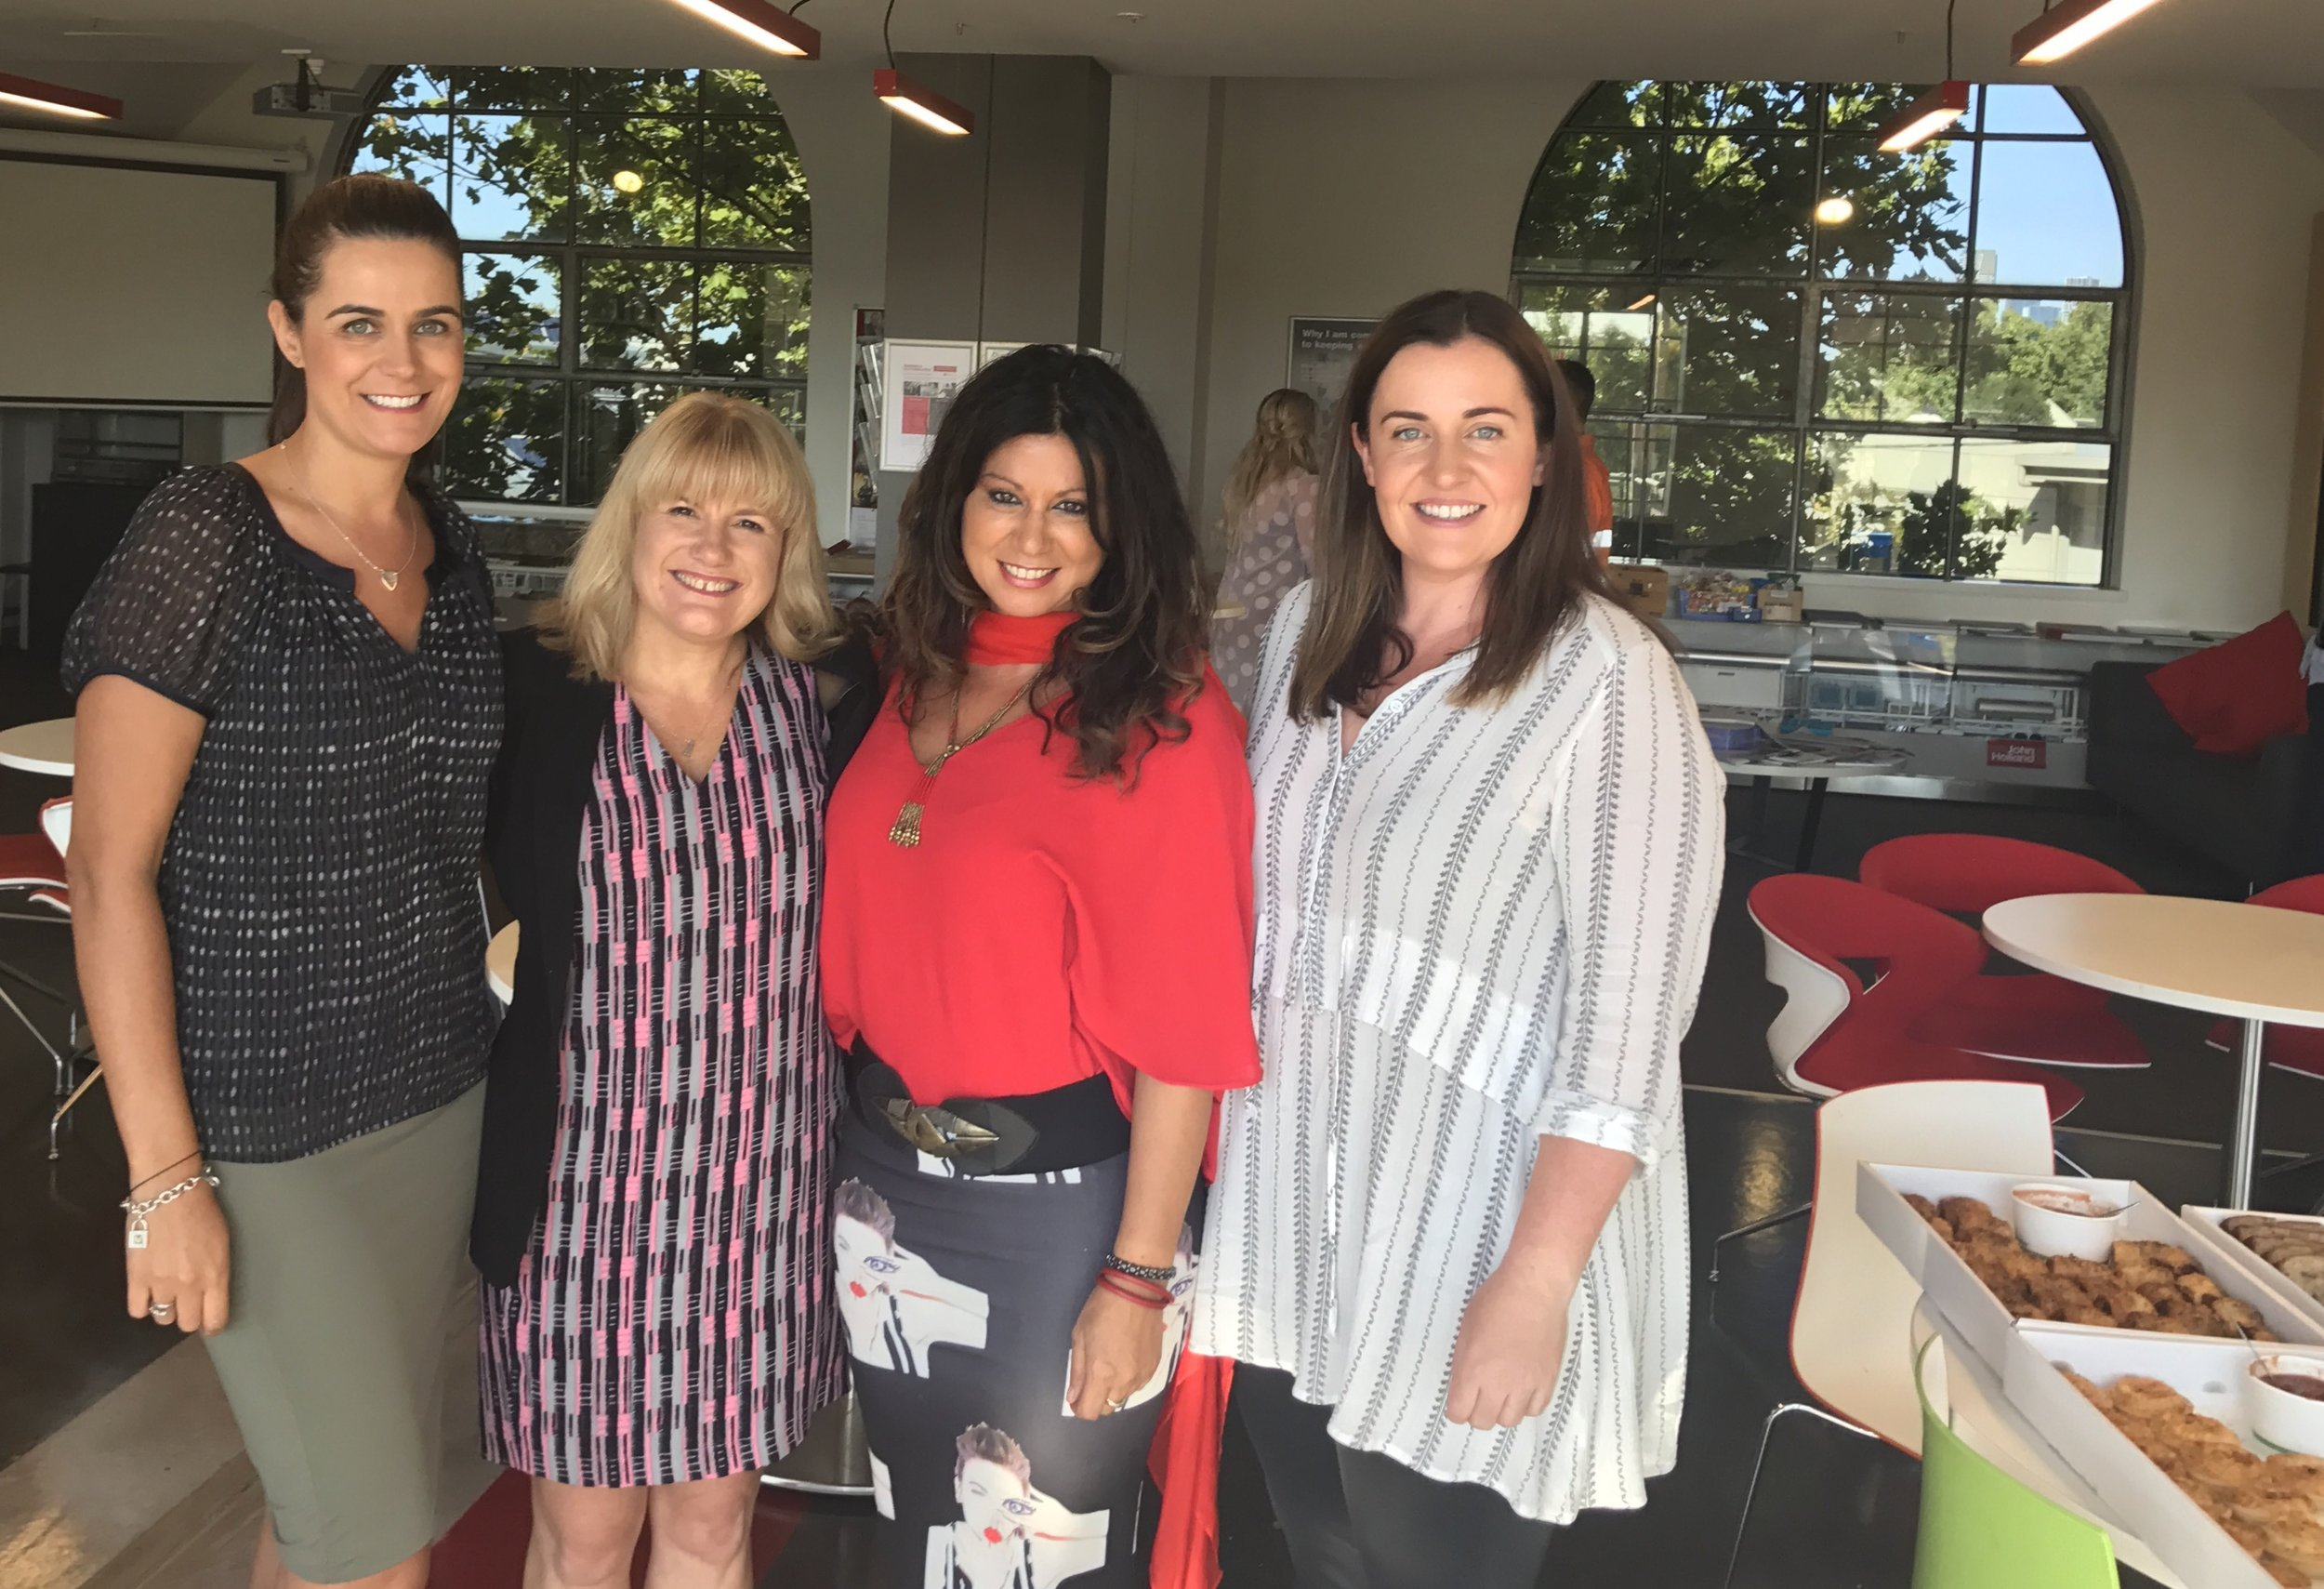 """Congratulations to our second cohort of WOW participants. The journey is just beginning. We are very proud of this program and that we are able to offer these leadership and development opportunities to our female employees."" --Loren Tairi, People and Culture Manager, VIC/SA/TAS & NZ, John Holland Group Pty Ltd, along with Karen Murfett, Annalise Jennings and Abbey White."